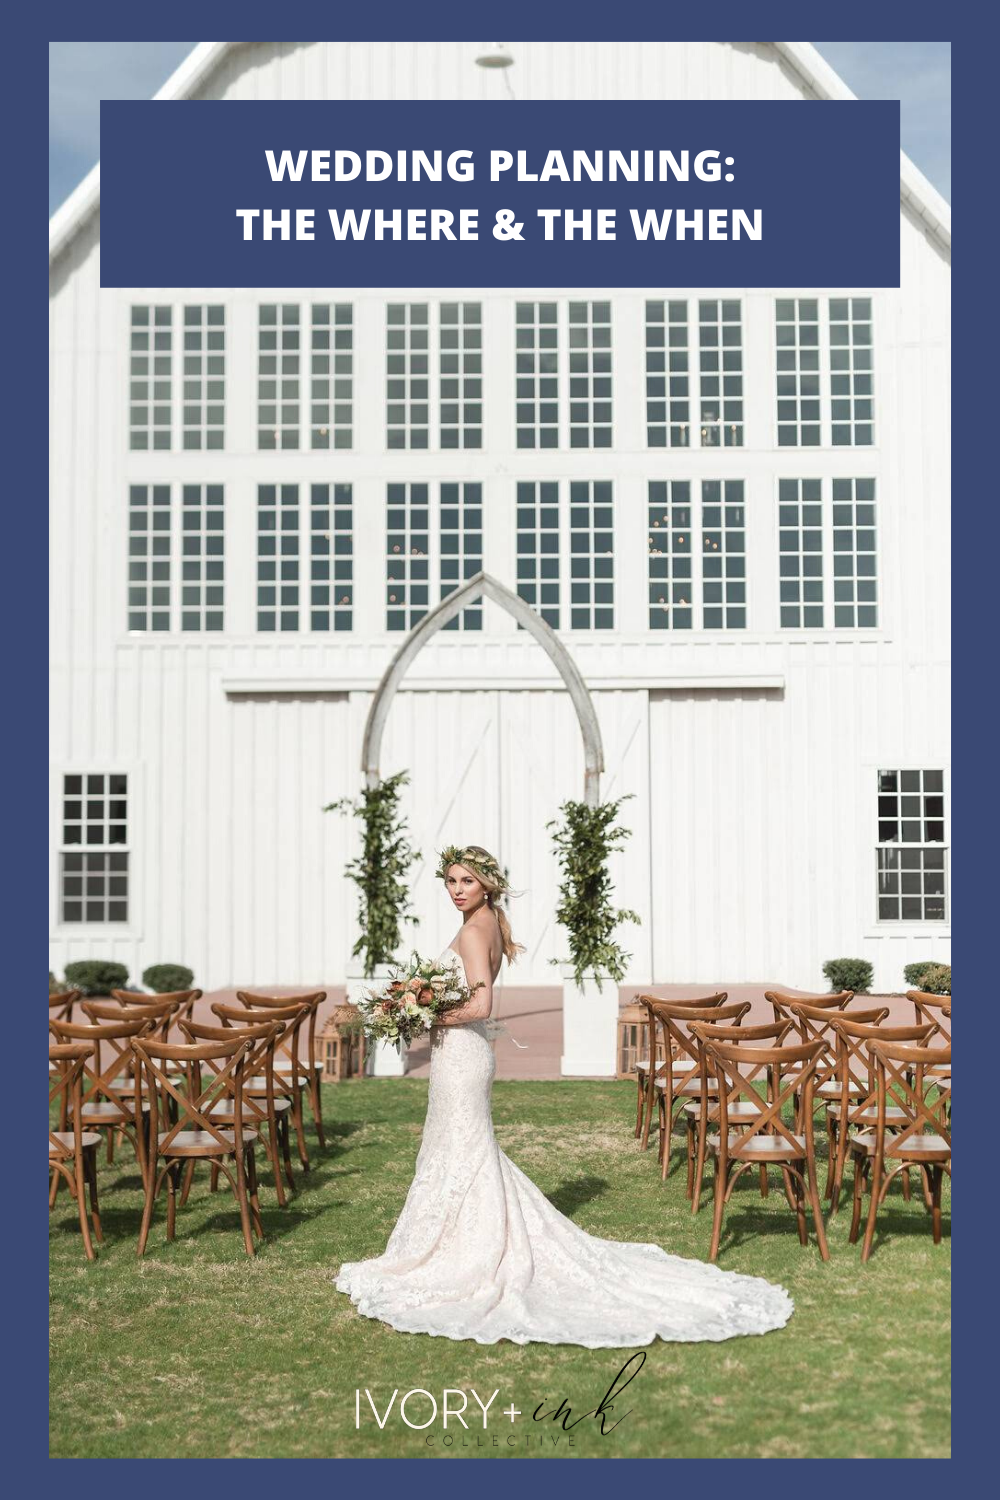 Wedding Planning - The Where & The When - originally published on ivoryandink.com